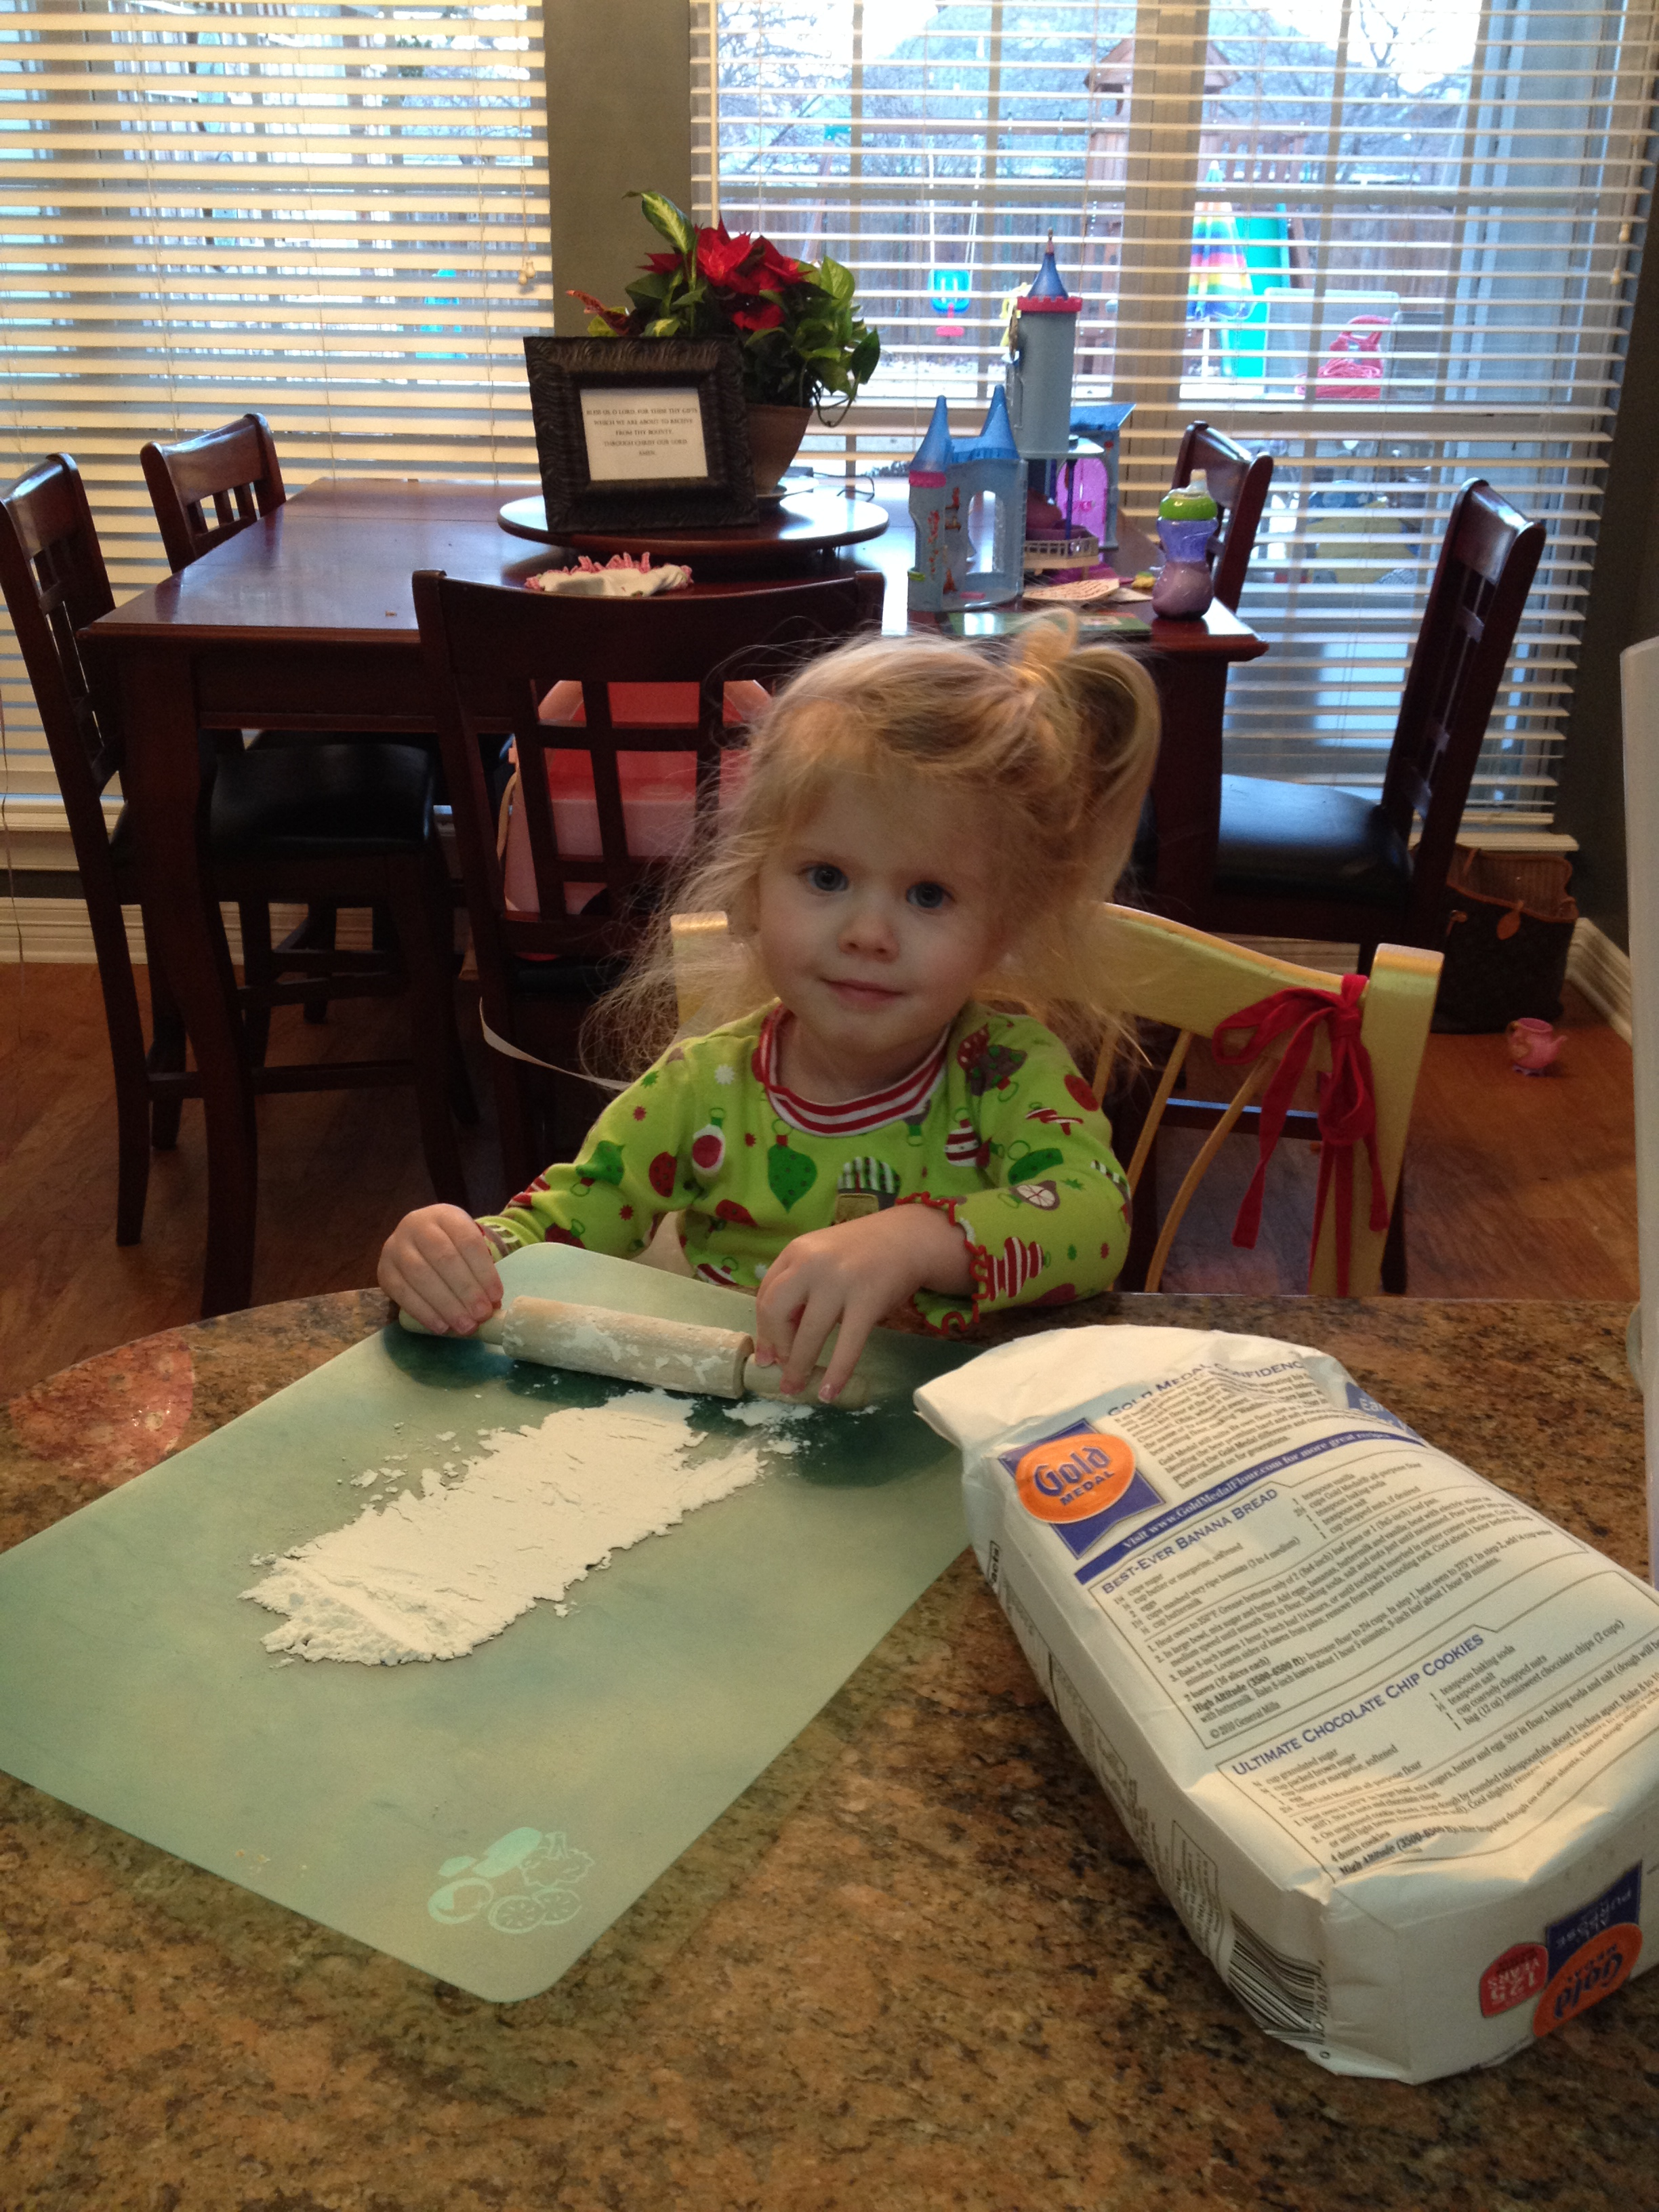 Caroline, 3 years old. Baking with Mom!